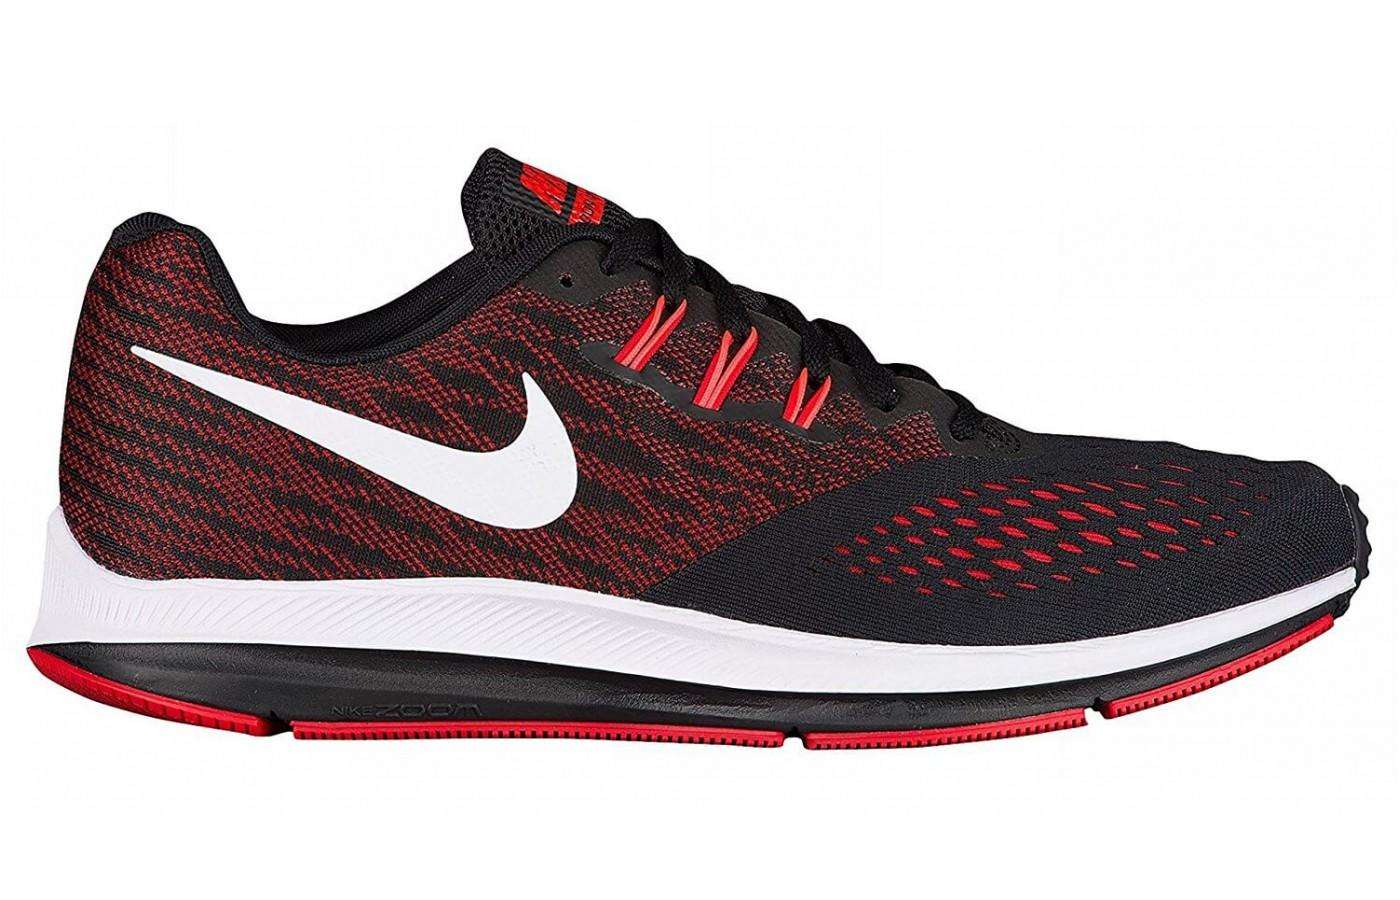 reputable site 07c38 9a89e The Nike Zoom Winflow 4 is lightweight and breathable.